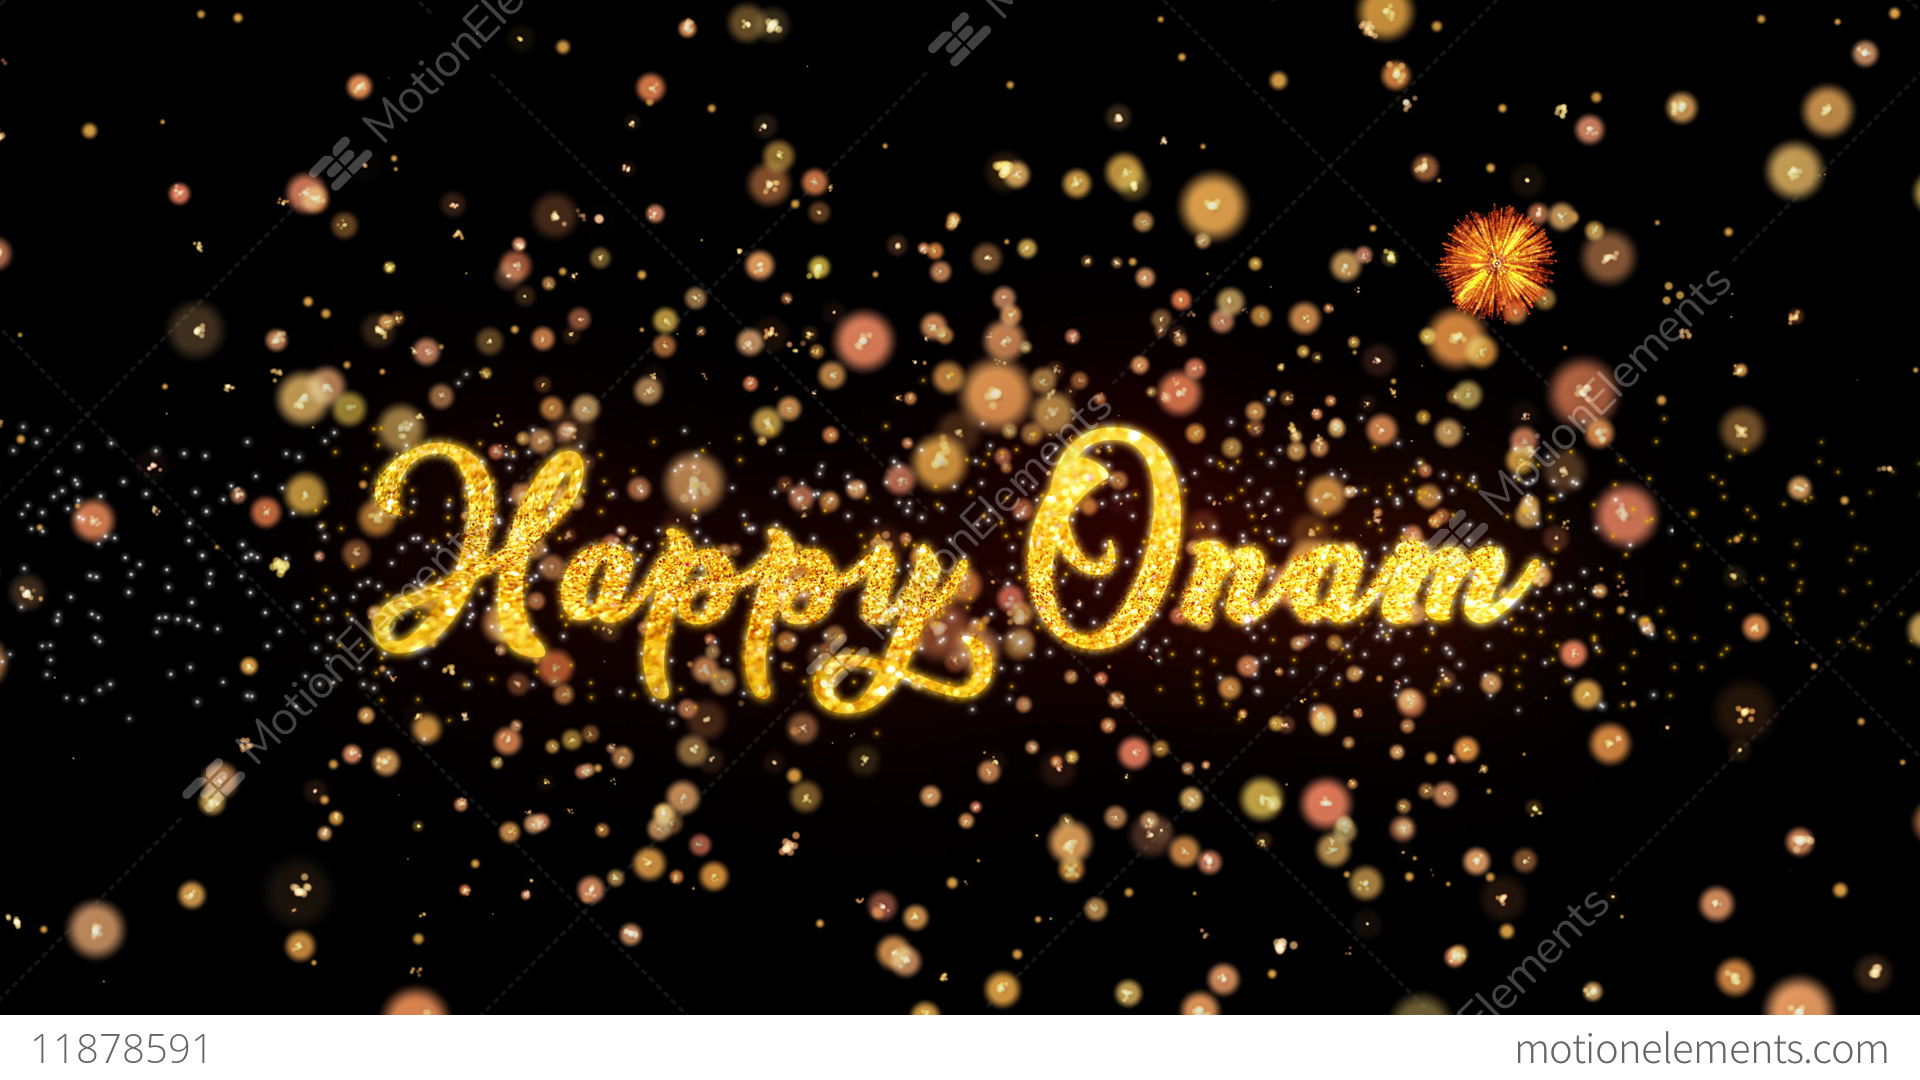 Happy Onam Abstract Particles And Glitter Fireworks Greeting Card